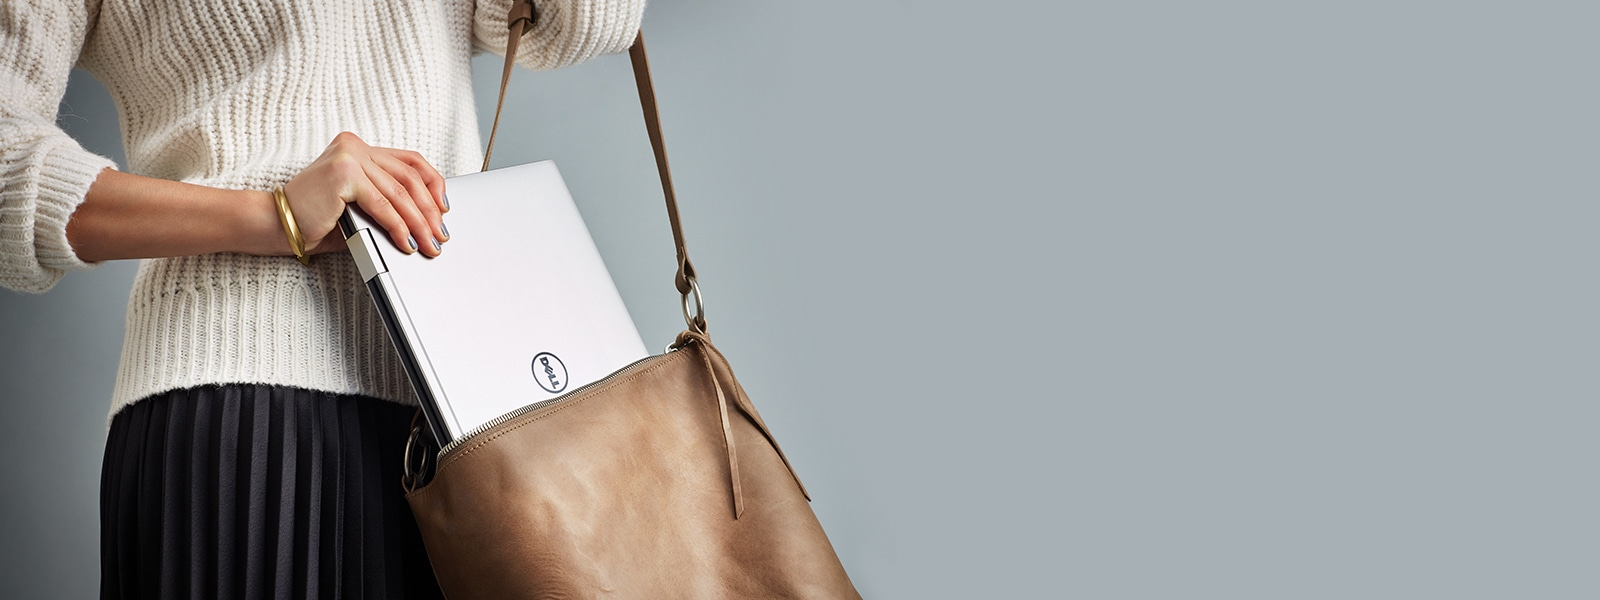 Woman pulling out a Dell XPS laptop from her handbag.